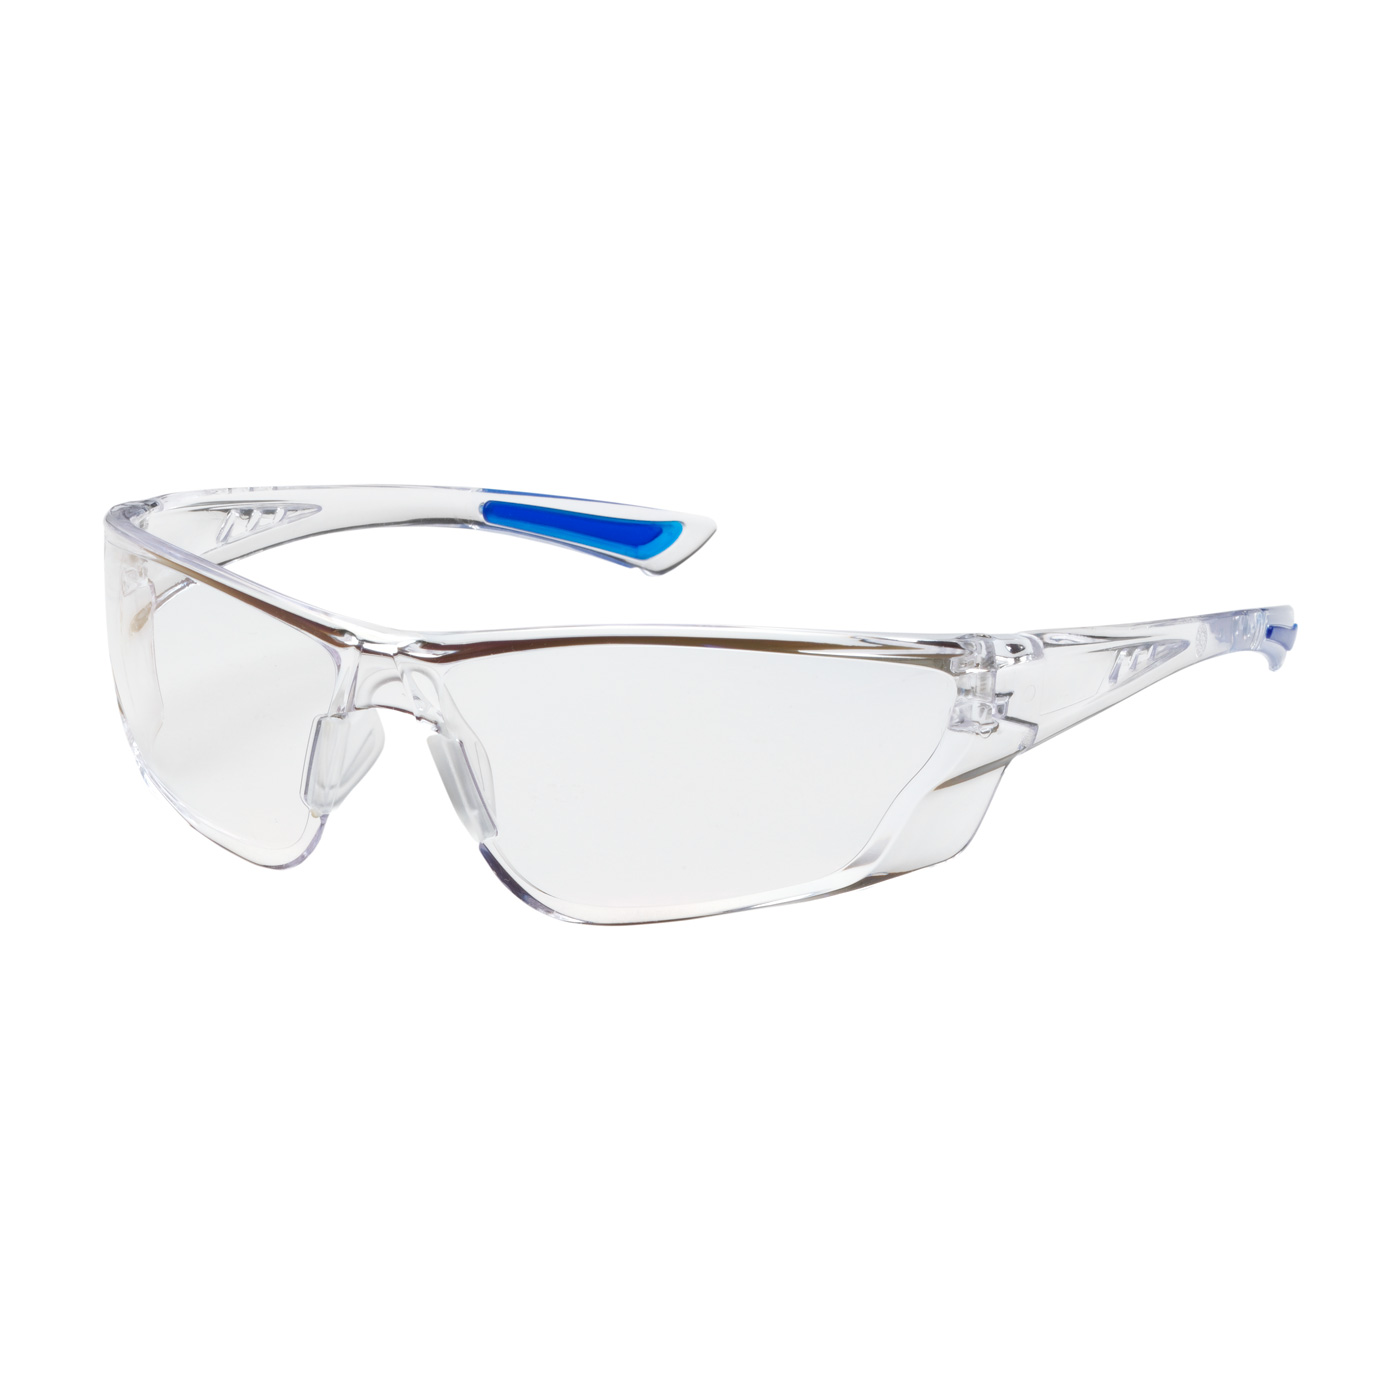 PIPR 250-32-0520 Rimless Safety Glasses with Clear Temple, Clear Lens and Anti-Scratch / FogLess 3Sixty Coating